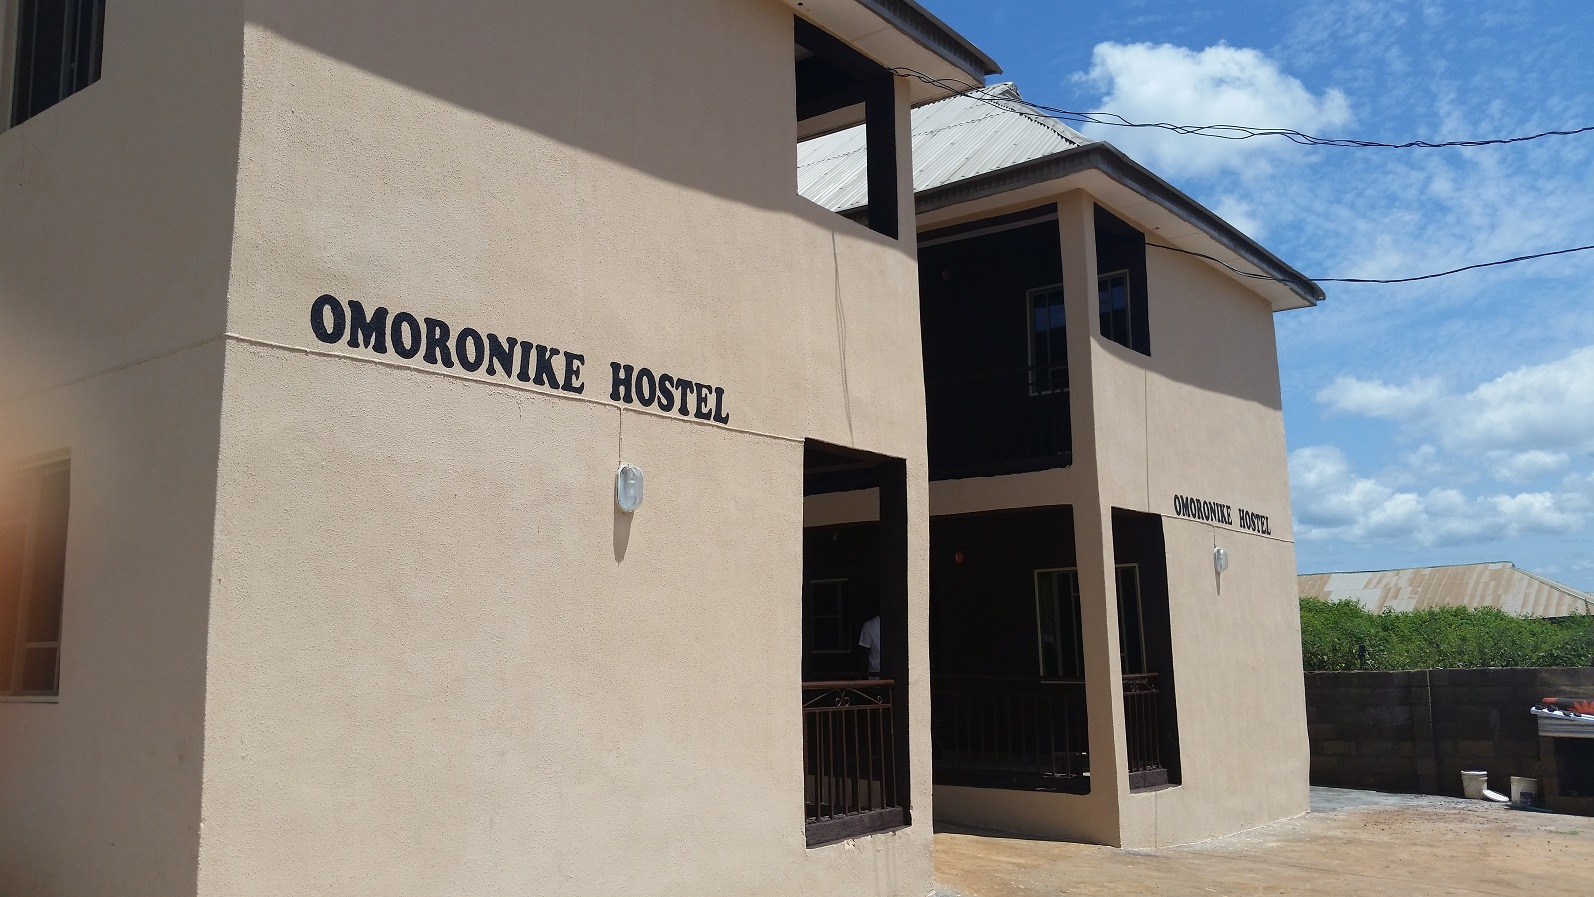 OMORONIKE HOSTEL